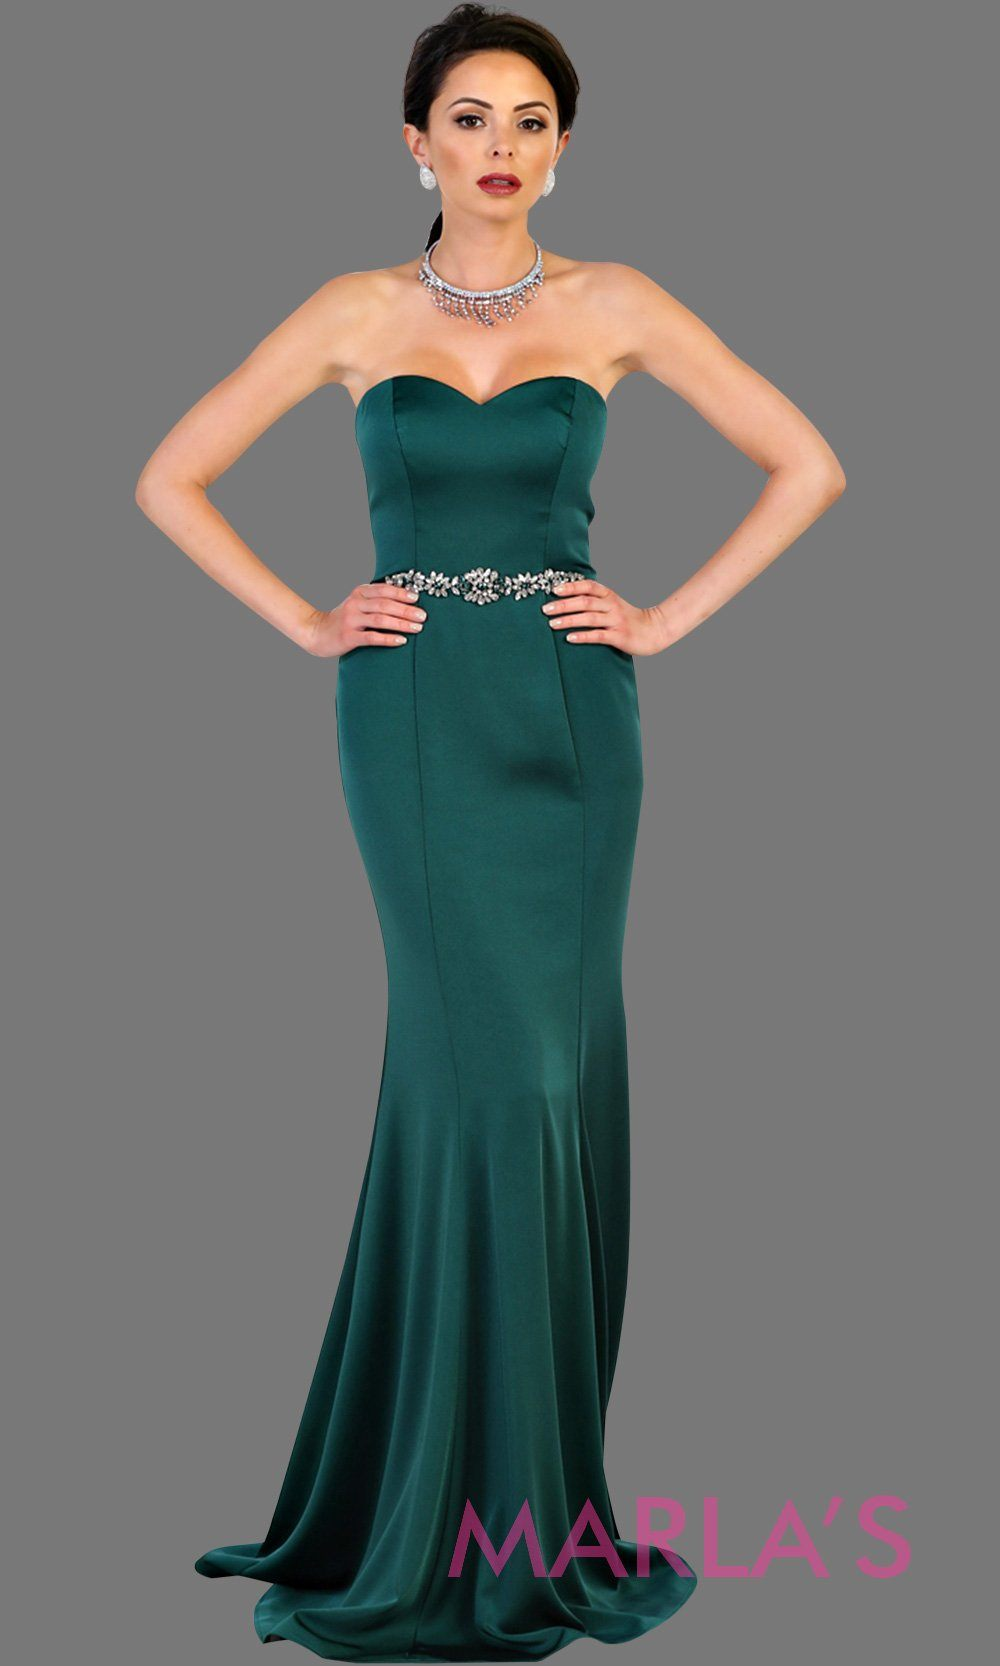 Long hunter green strapless fitted dress with rhinestone belt. Perfect dark green dress for prom, gala, bridesmaids,  formal party, wedding guest dresses, sleek and sexy party dress. Available in plus sizes.